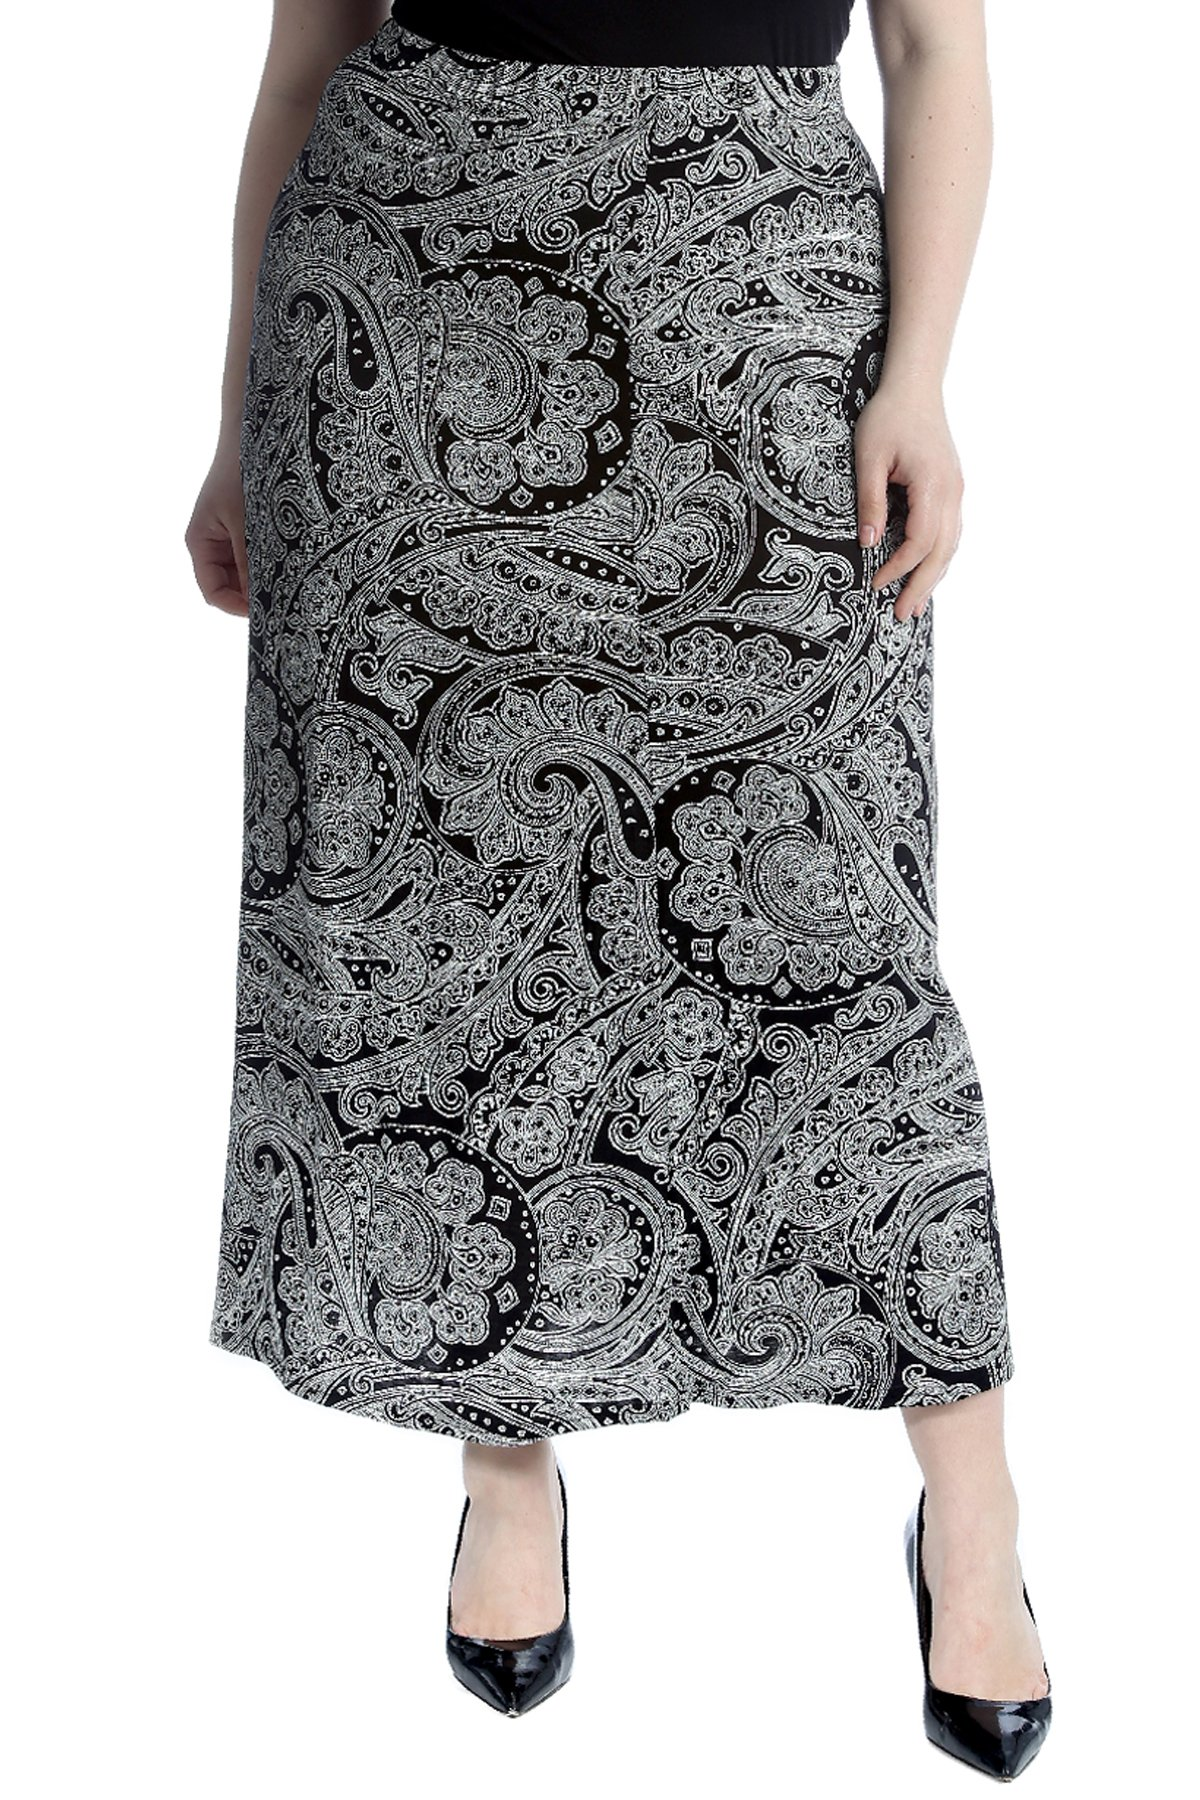 Nouvelle Collection Bold Paisley Print Mid Calf Skirt Black 26-28